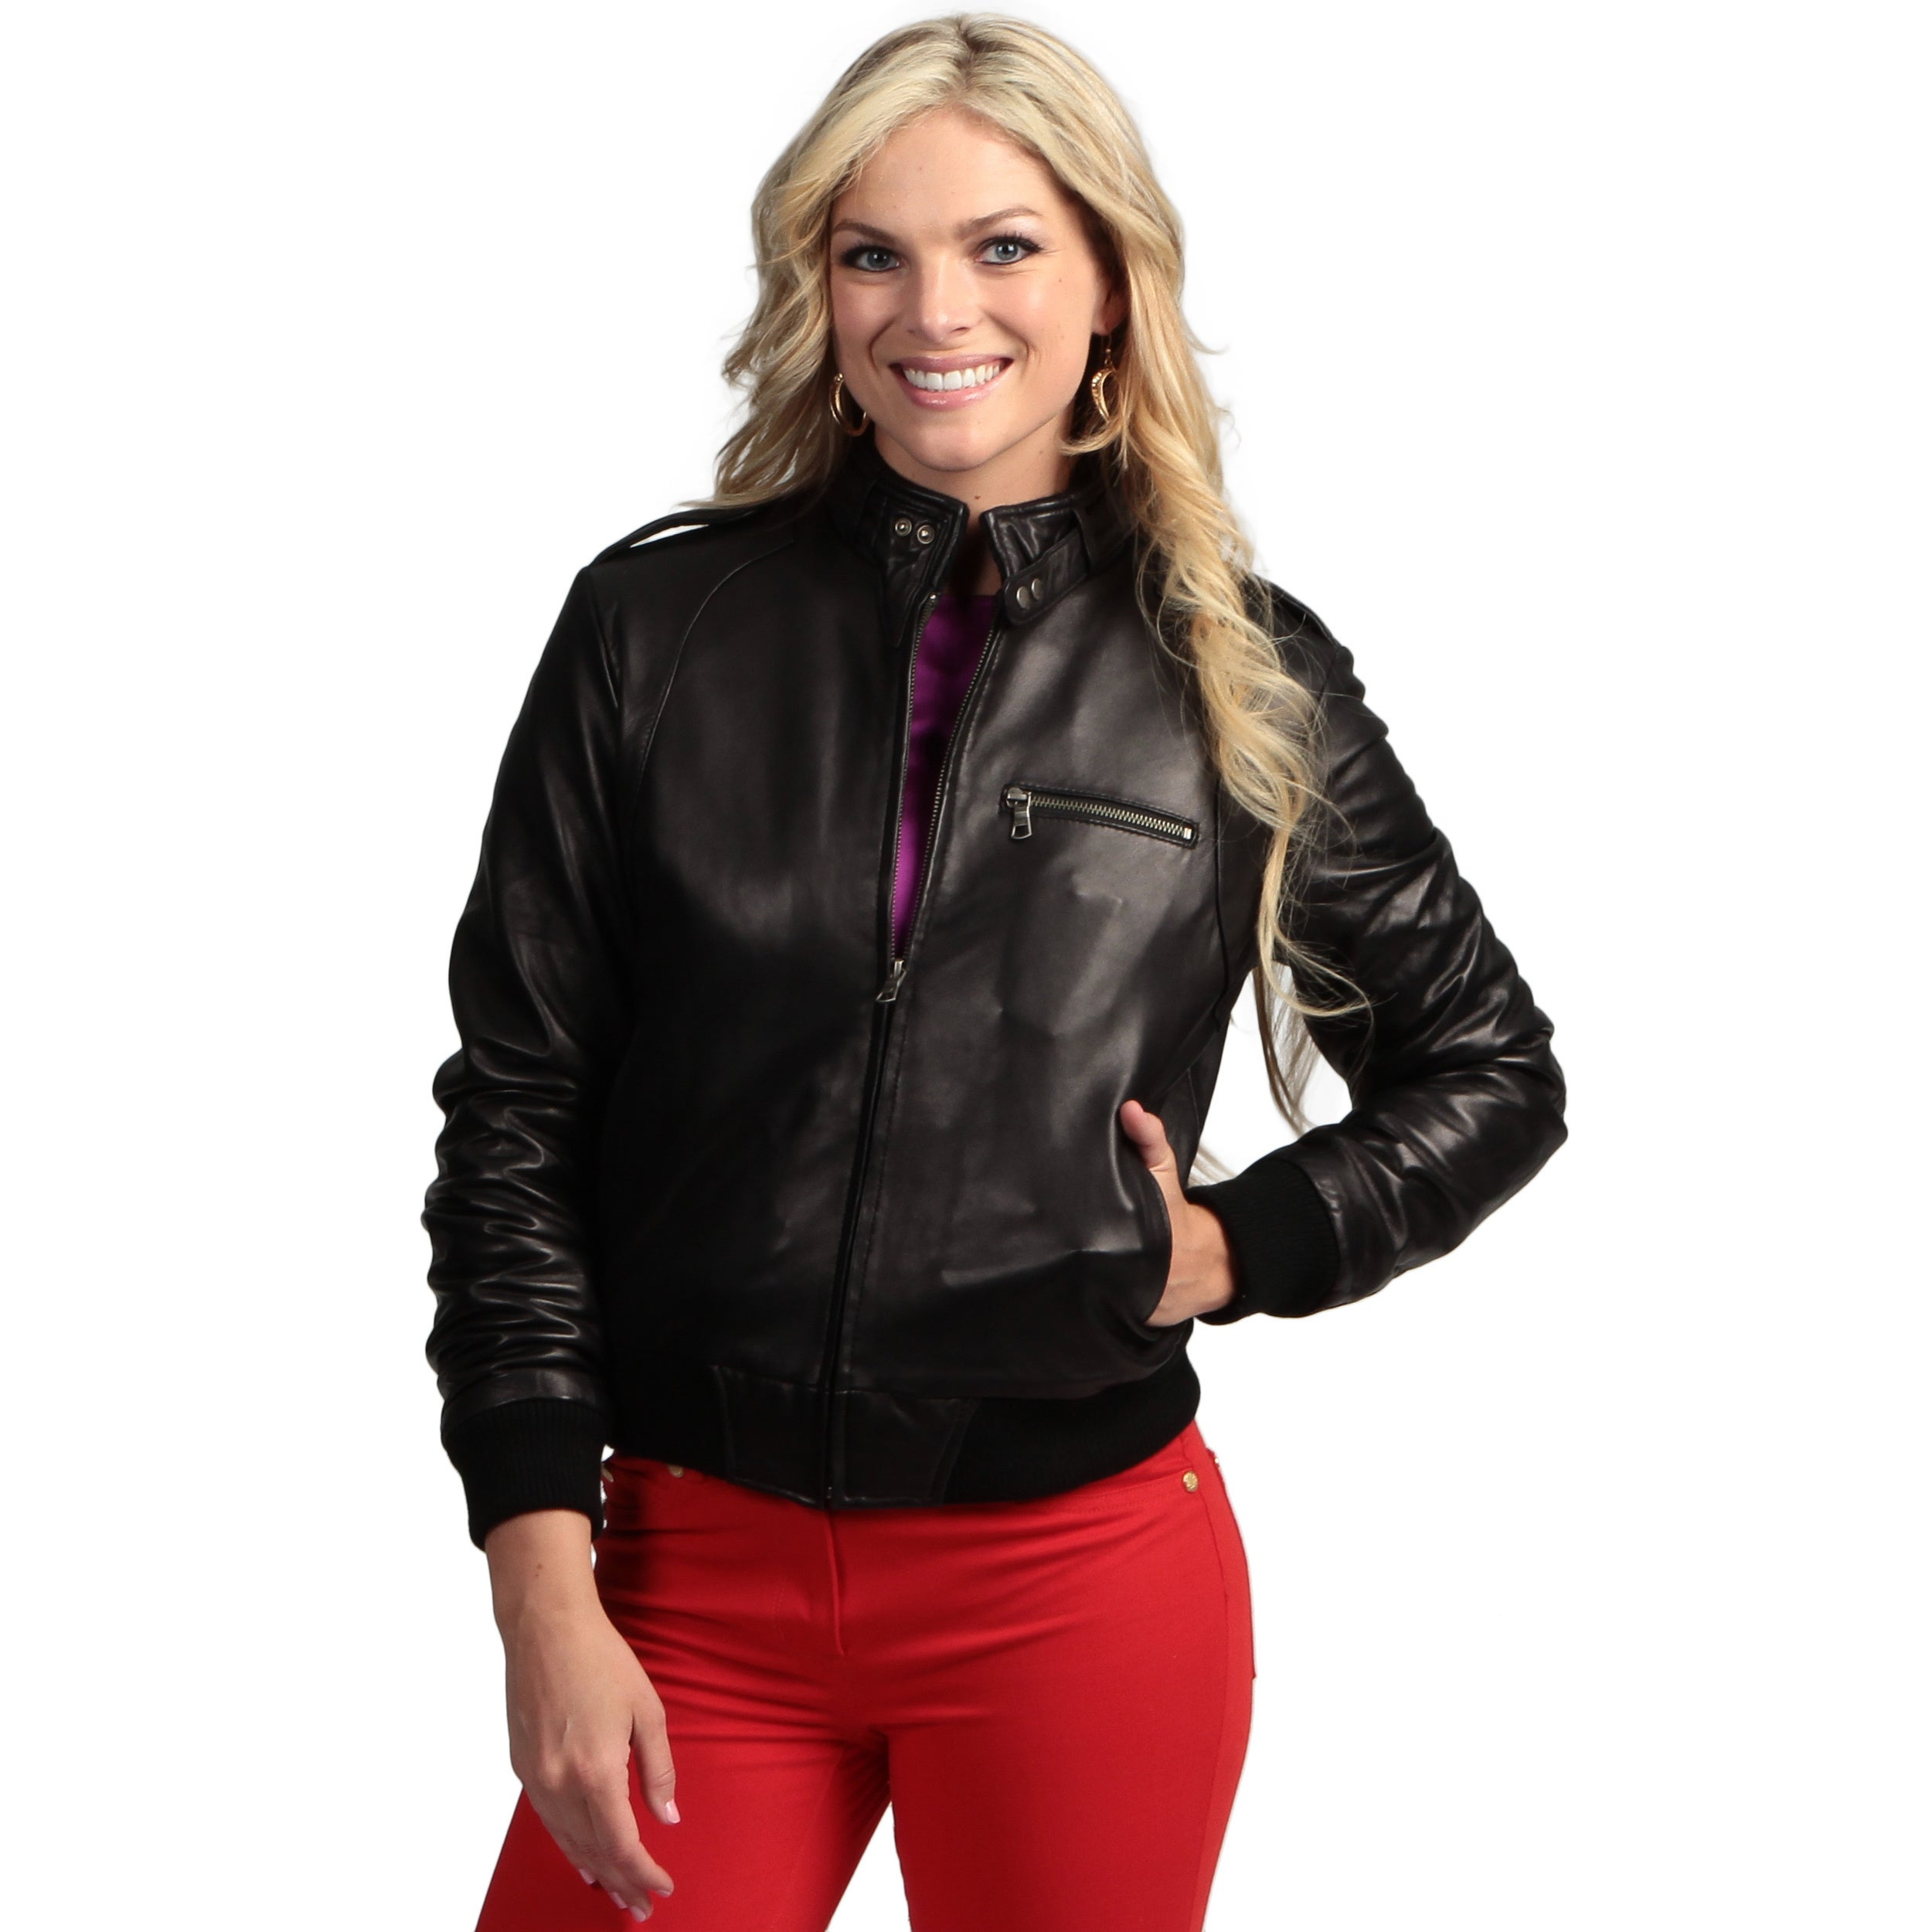 TANNERS AVENUE Women's Black Lambskin Leather Moto Bomber...